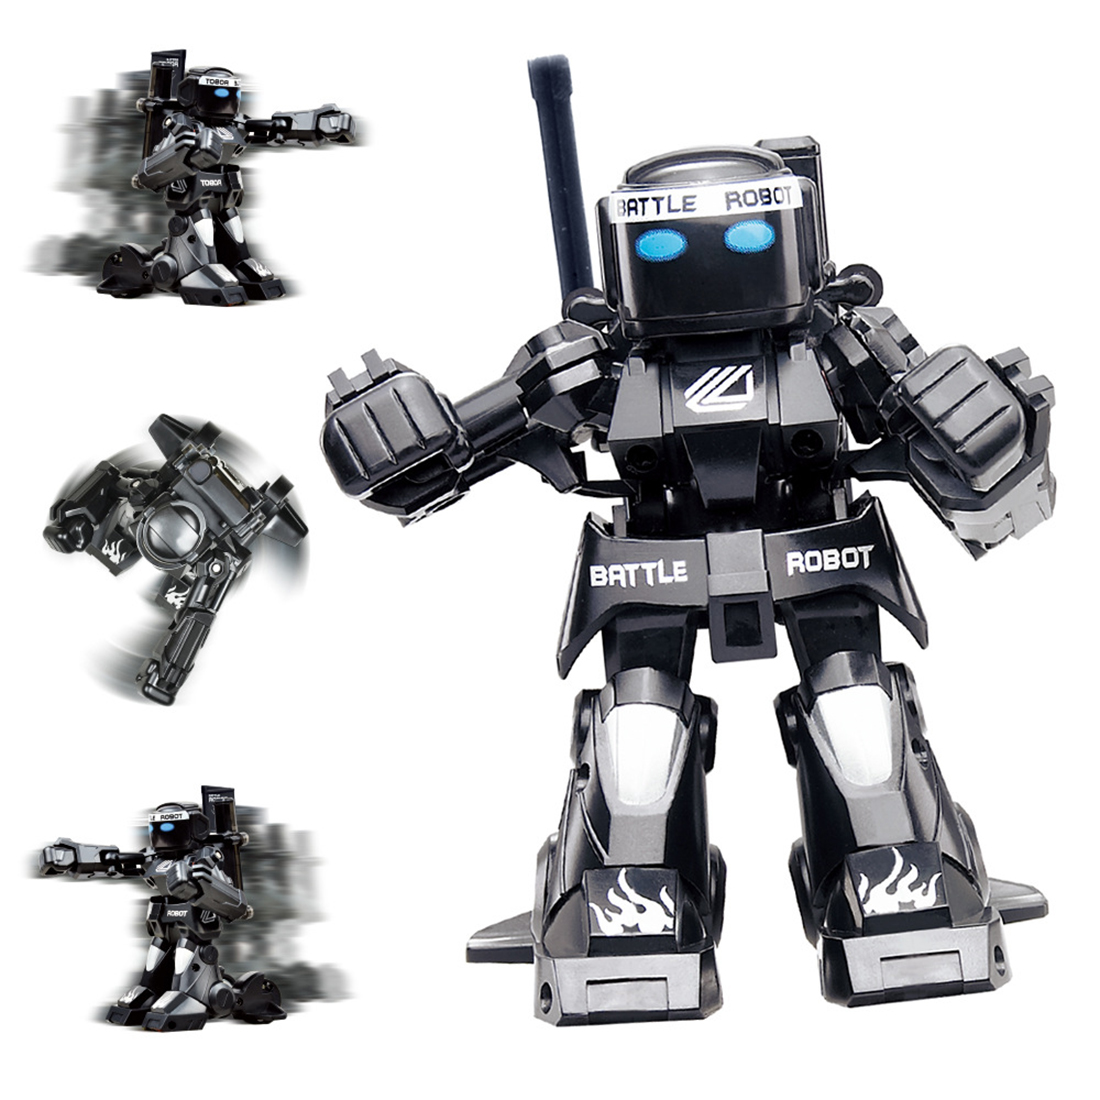 New 2.4G Remote Sensing Battle Robot RC Fighting Boxing Robot Toy Gift For Boys - Black/White